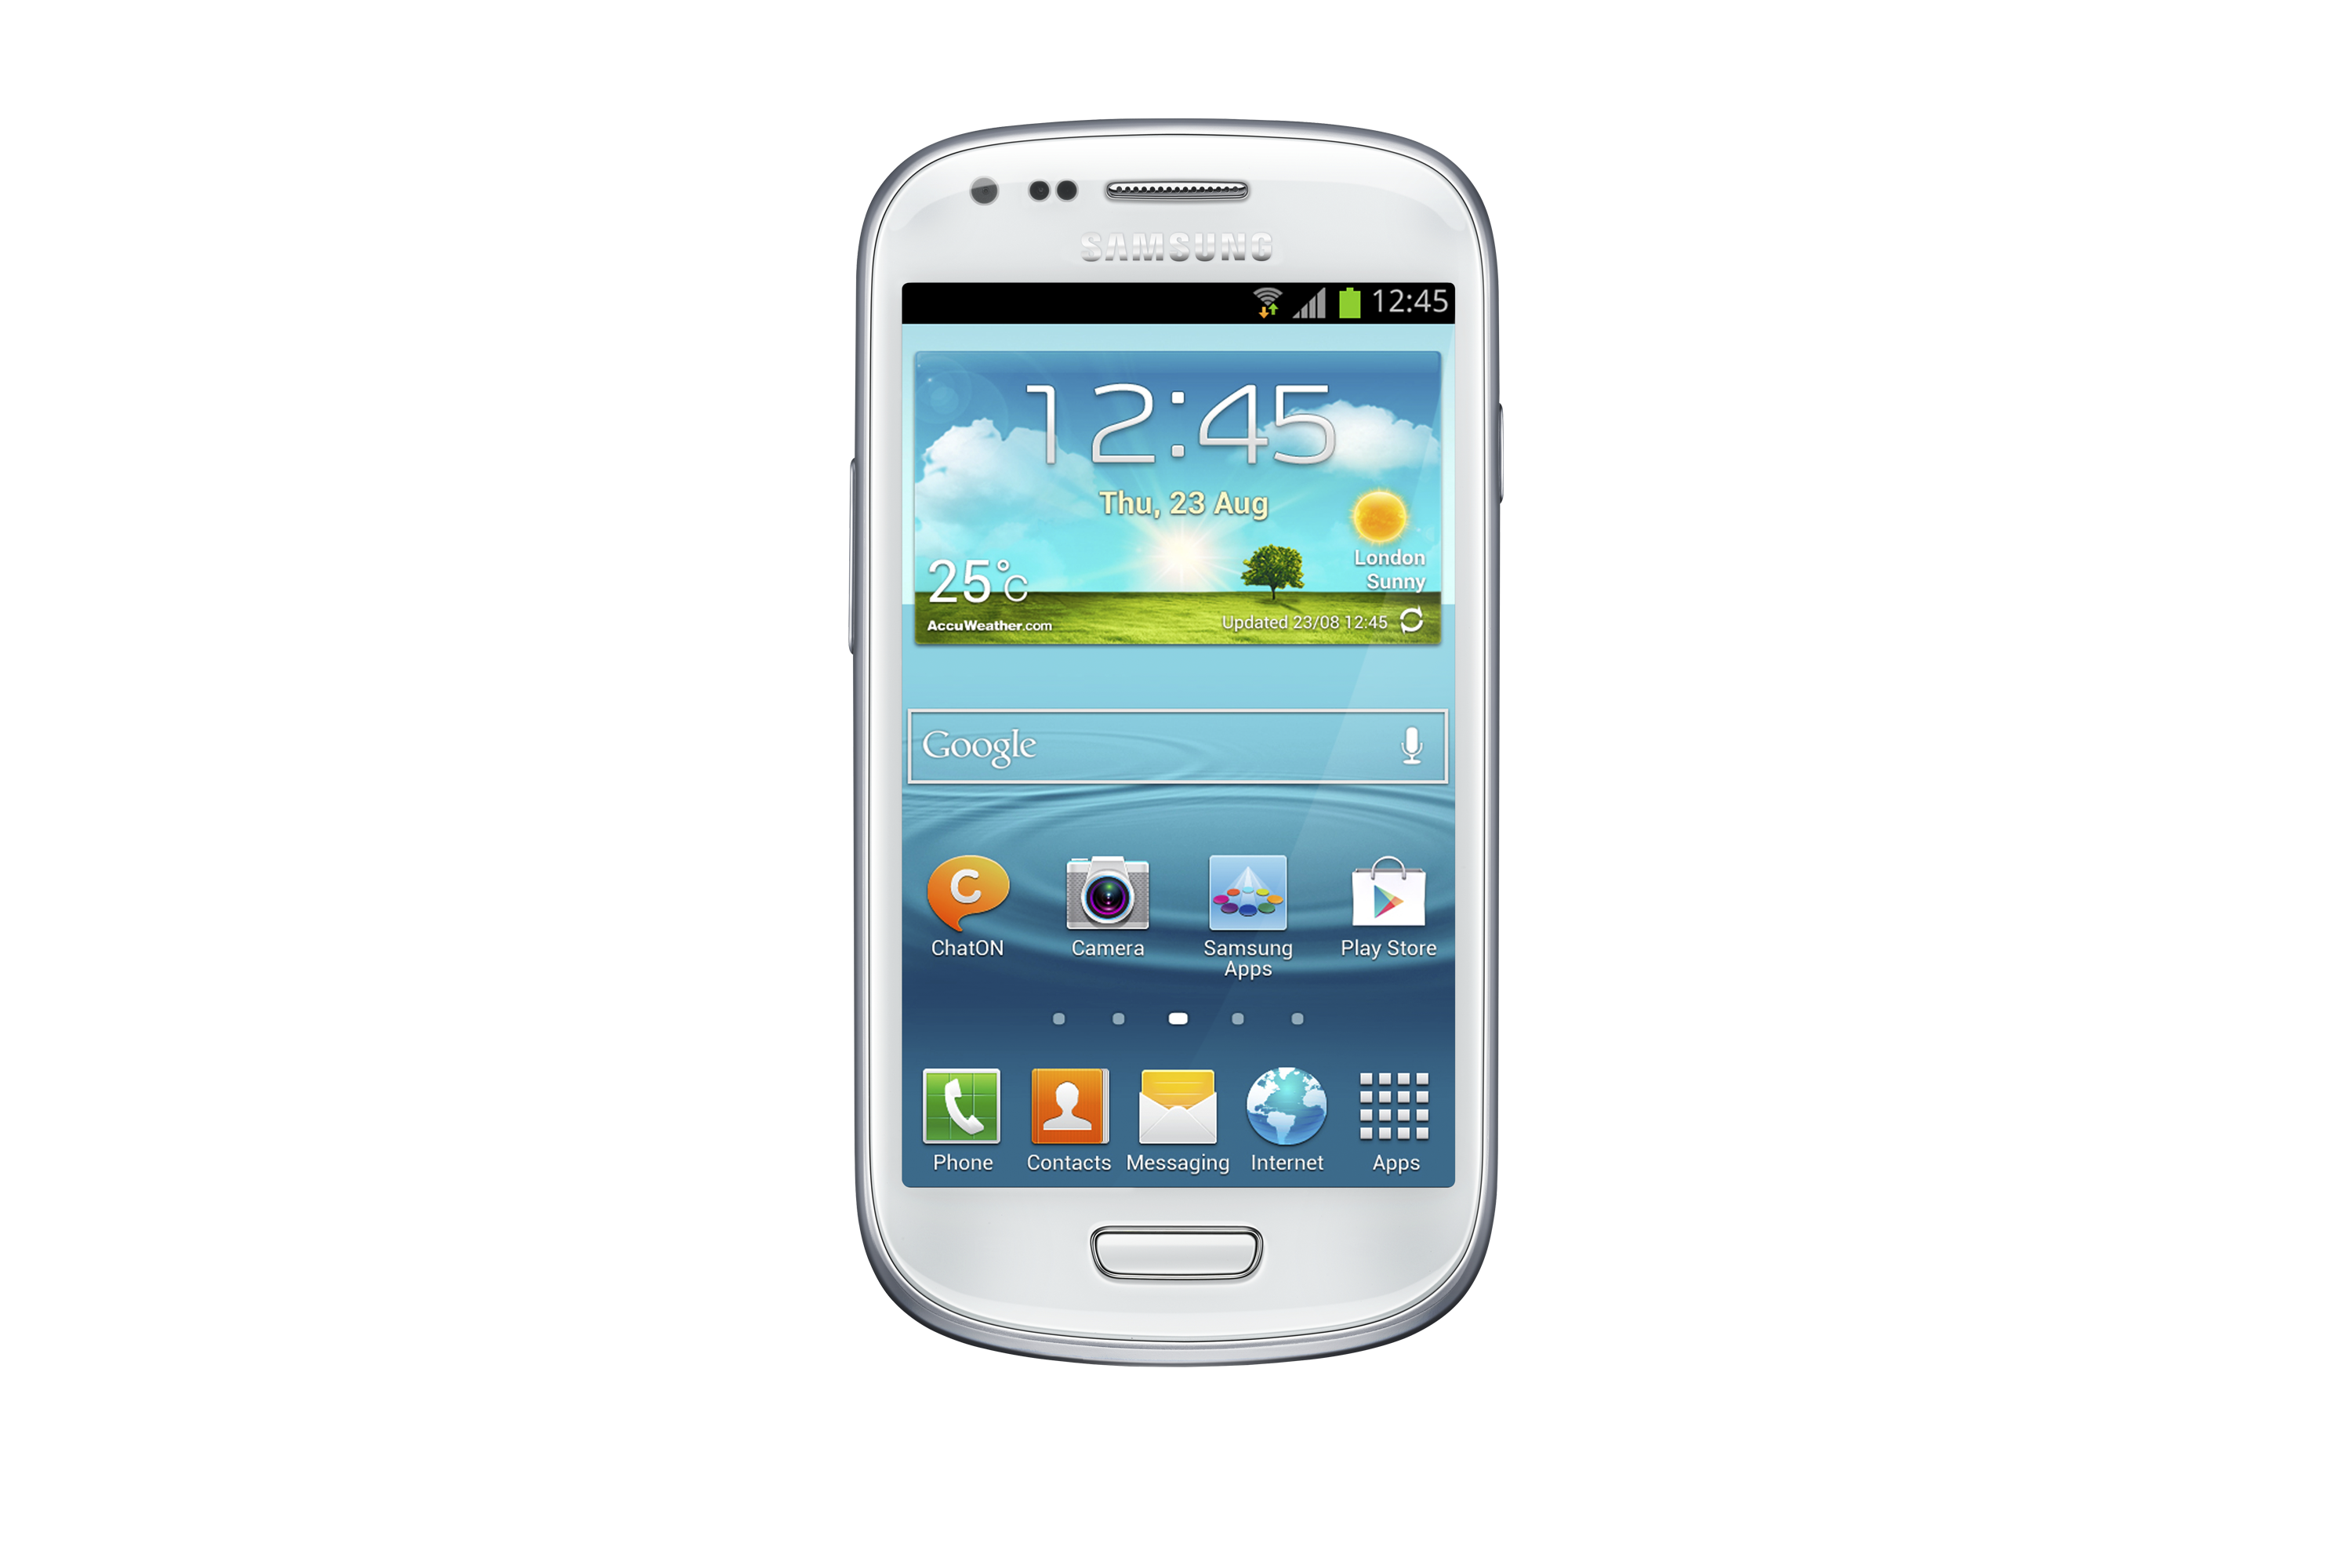 Samsung Galaxy S3 I9300 Manual Pdf